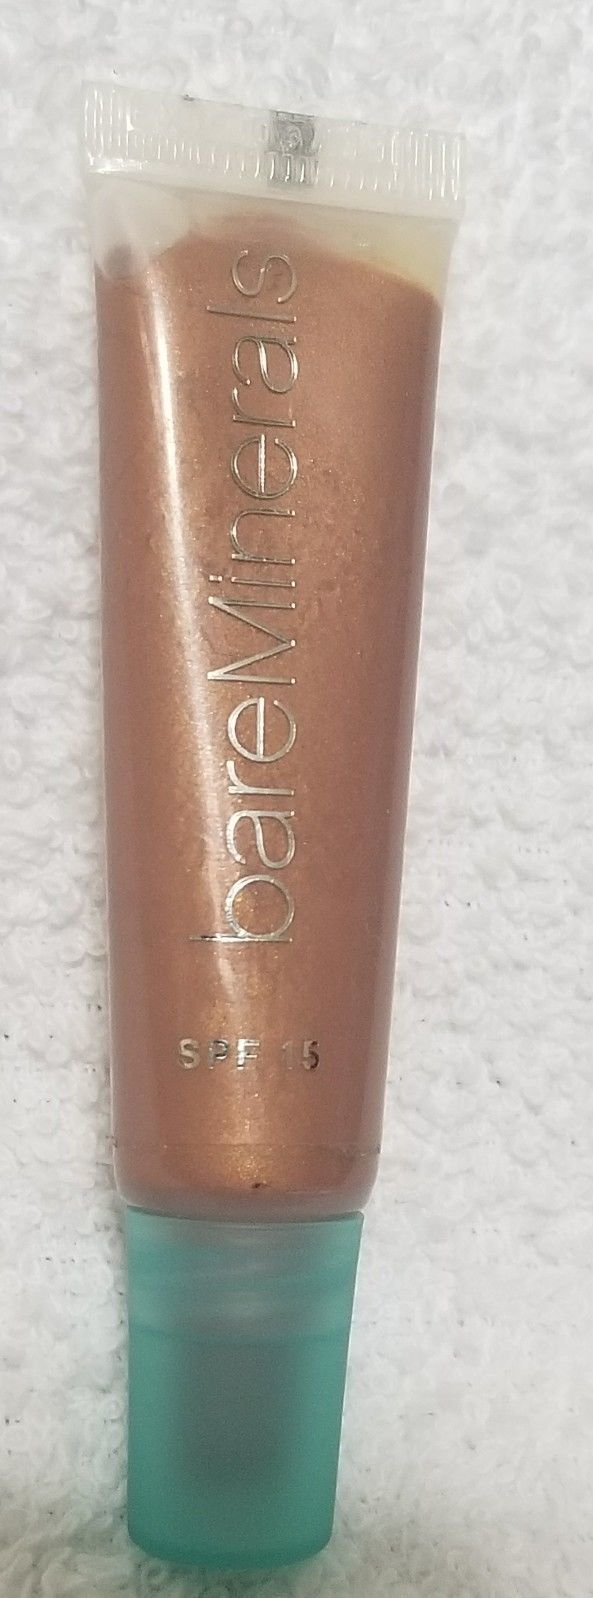 BareMinerals Bare Escentuals SPF 15 FIJI Lip Gloss Women .33 oz/10mL New Sealed